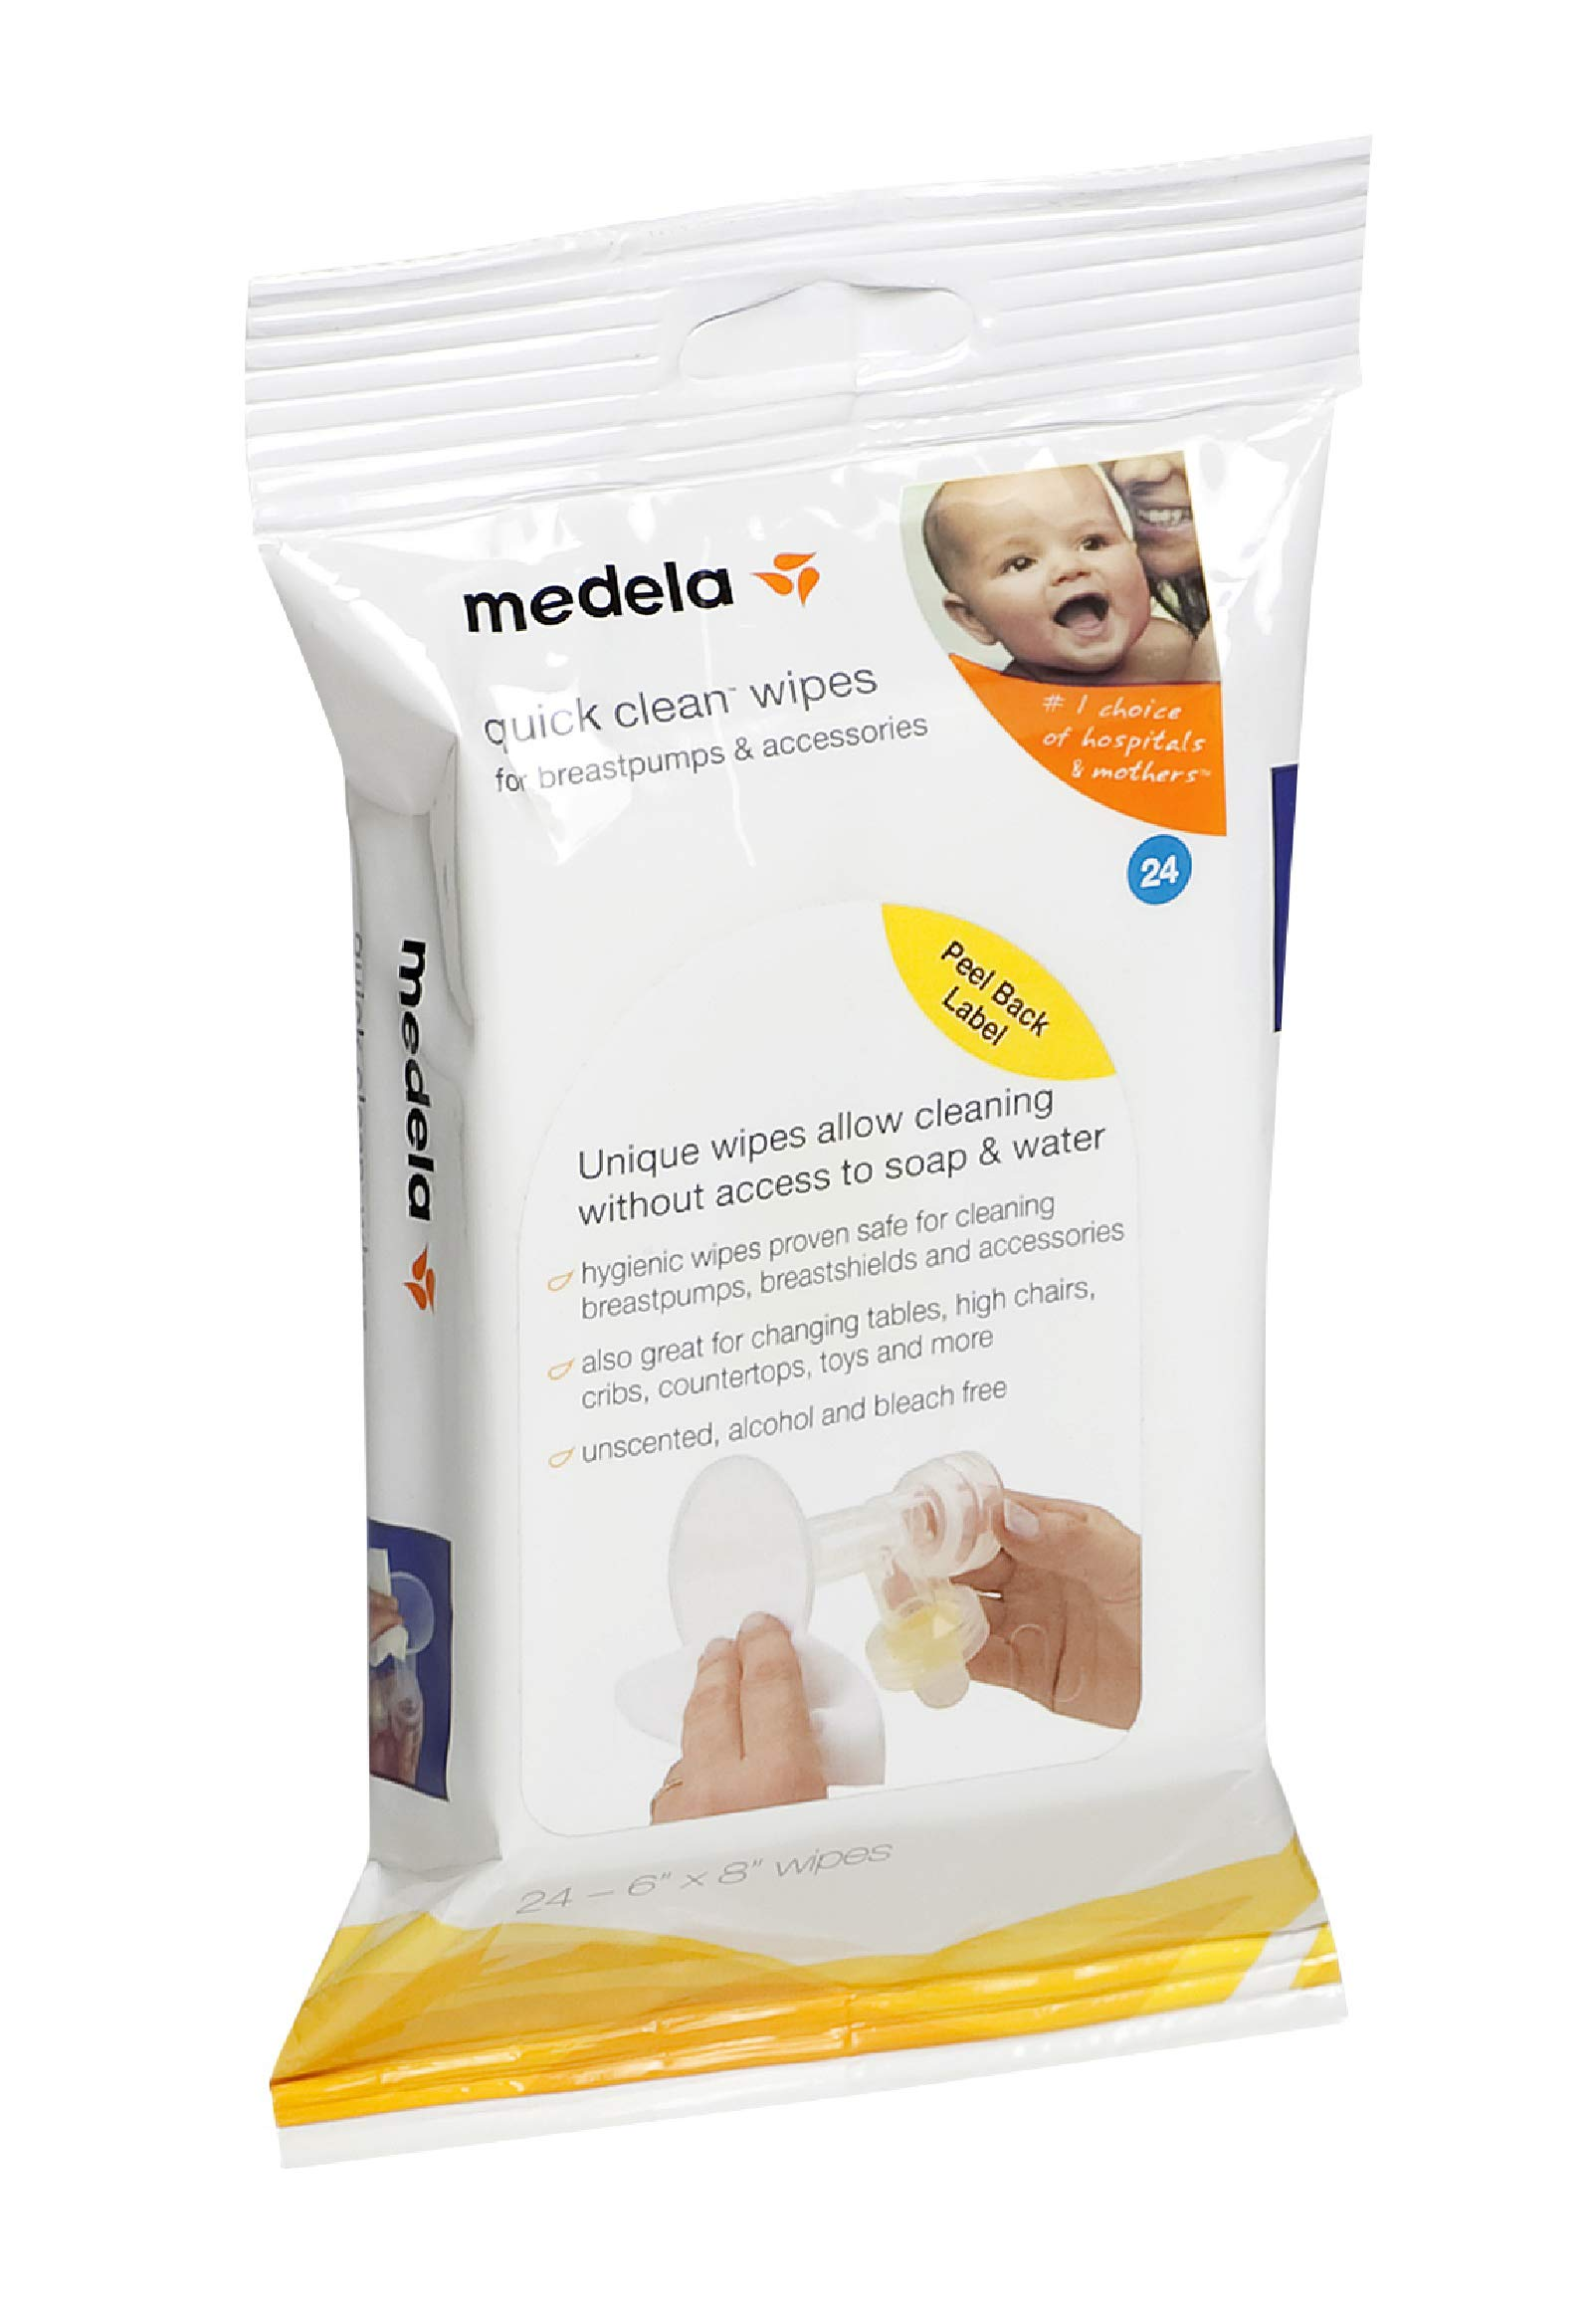 Medela Quick Clean Breast Pump and Accessory Wipes, 24 Count Resealable Pack, Convenient and Hygienic On the Go Cleaning for Tables, Countertops, Chairs, and More